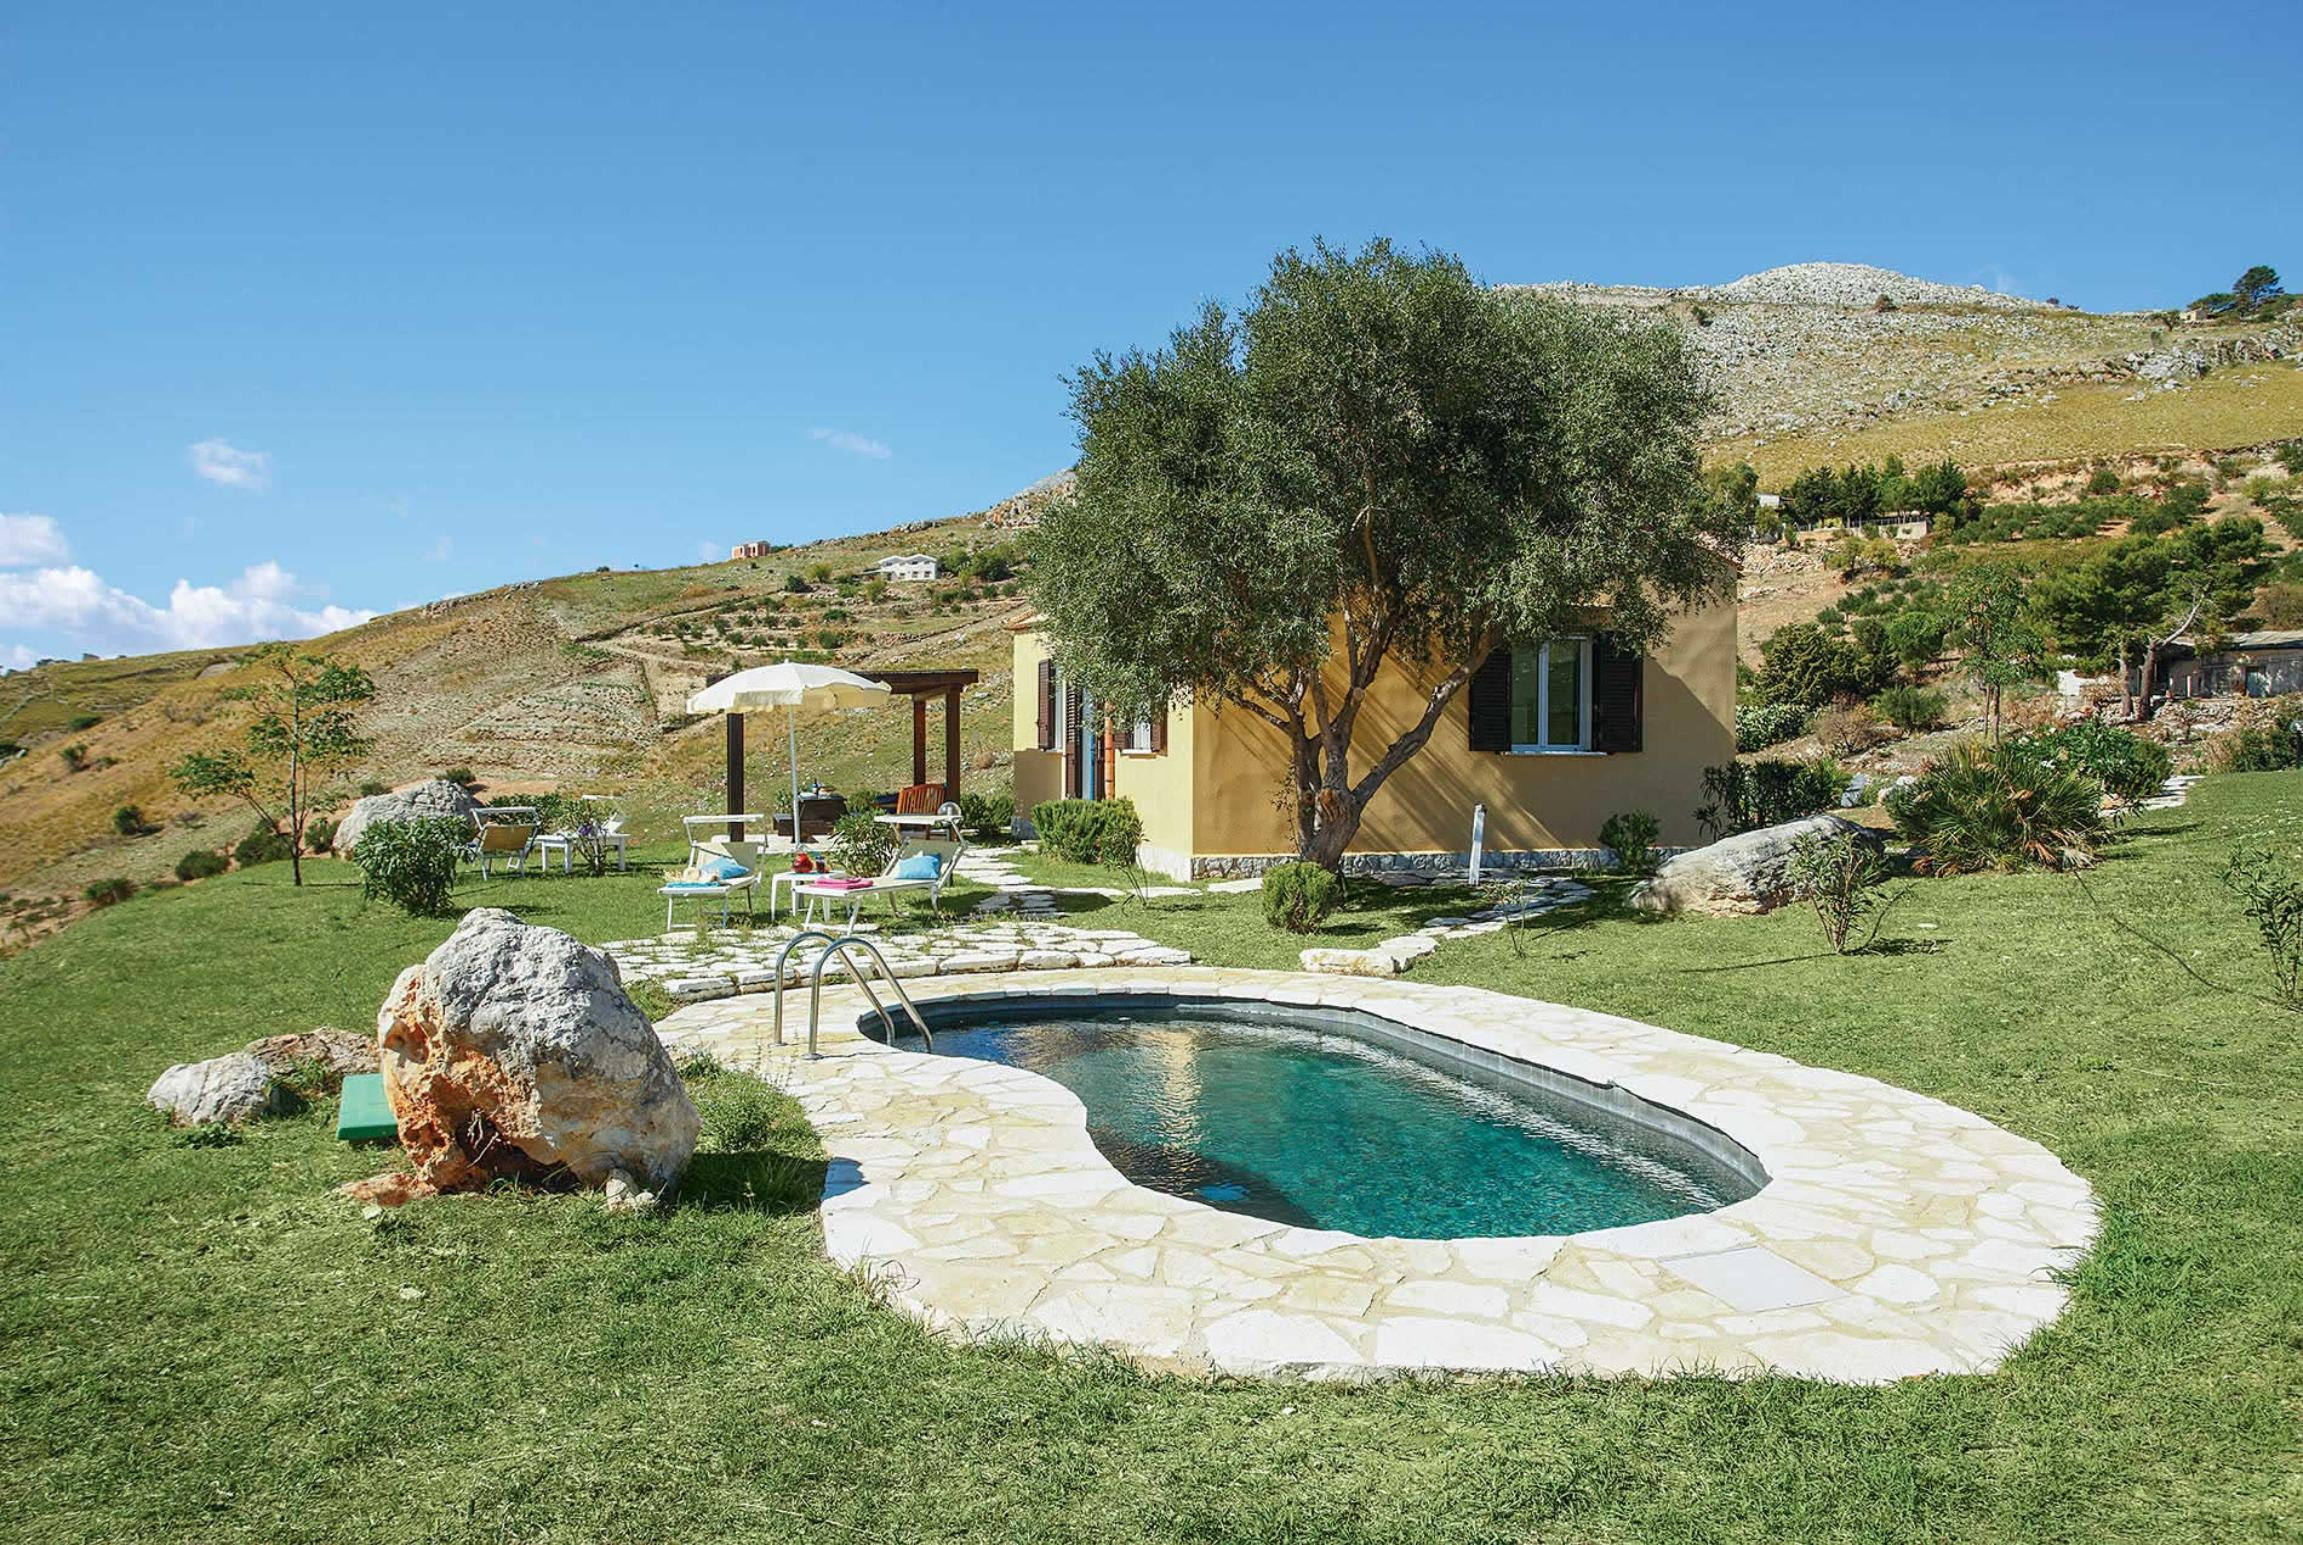 Read more about Sirena villa